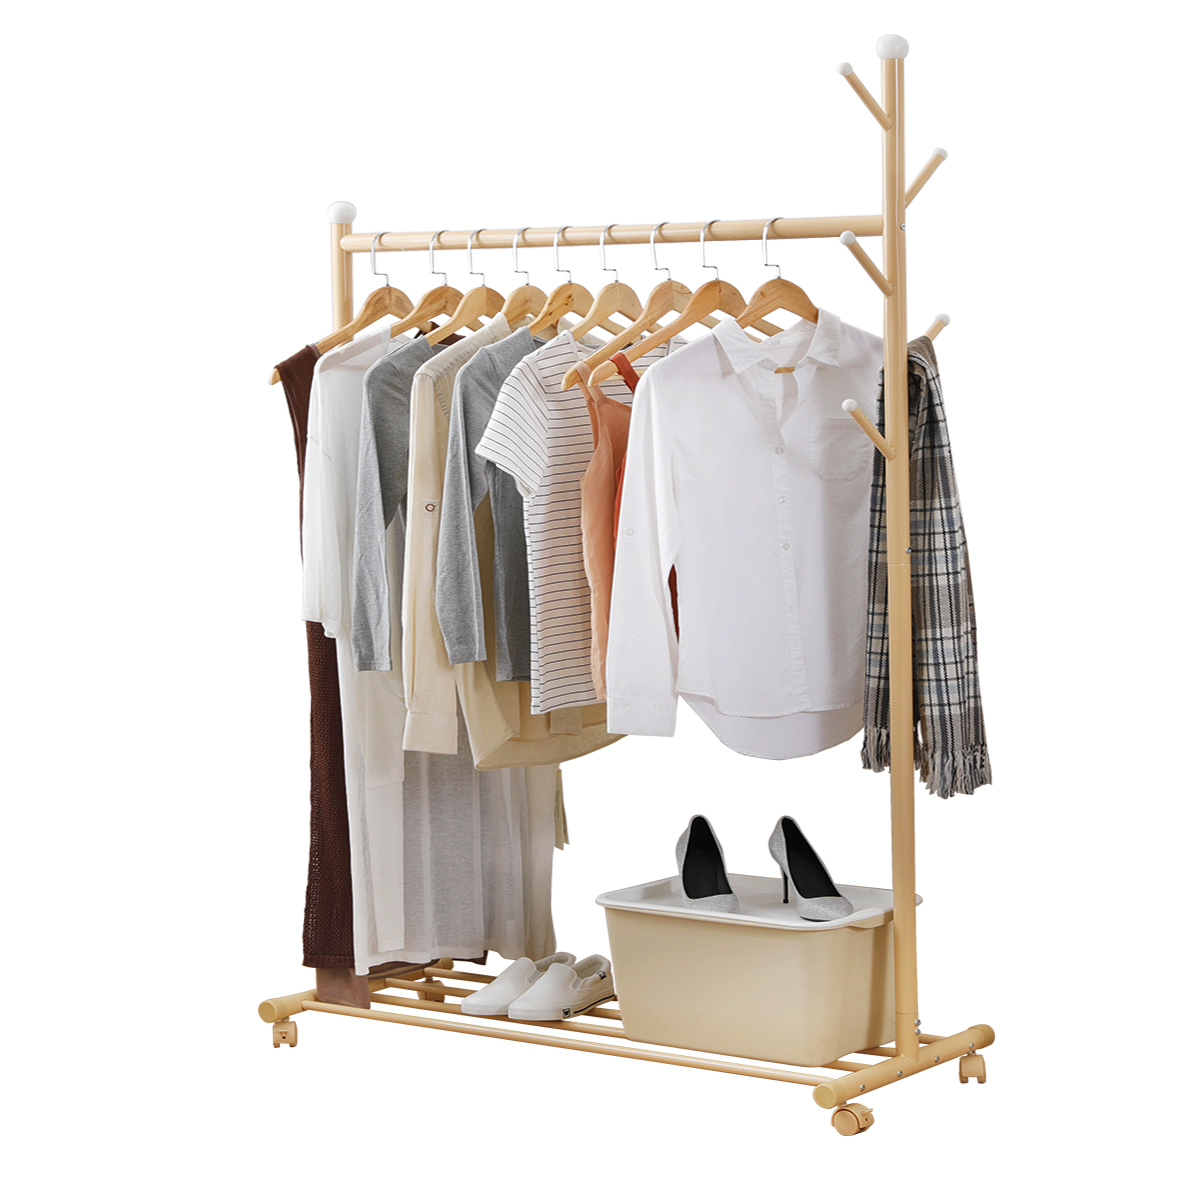 home organizer multifunctional clothing rack steel rod clothes rolling garment rack organizer indoor hanger with bottom shelves integrated coat stand